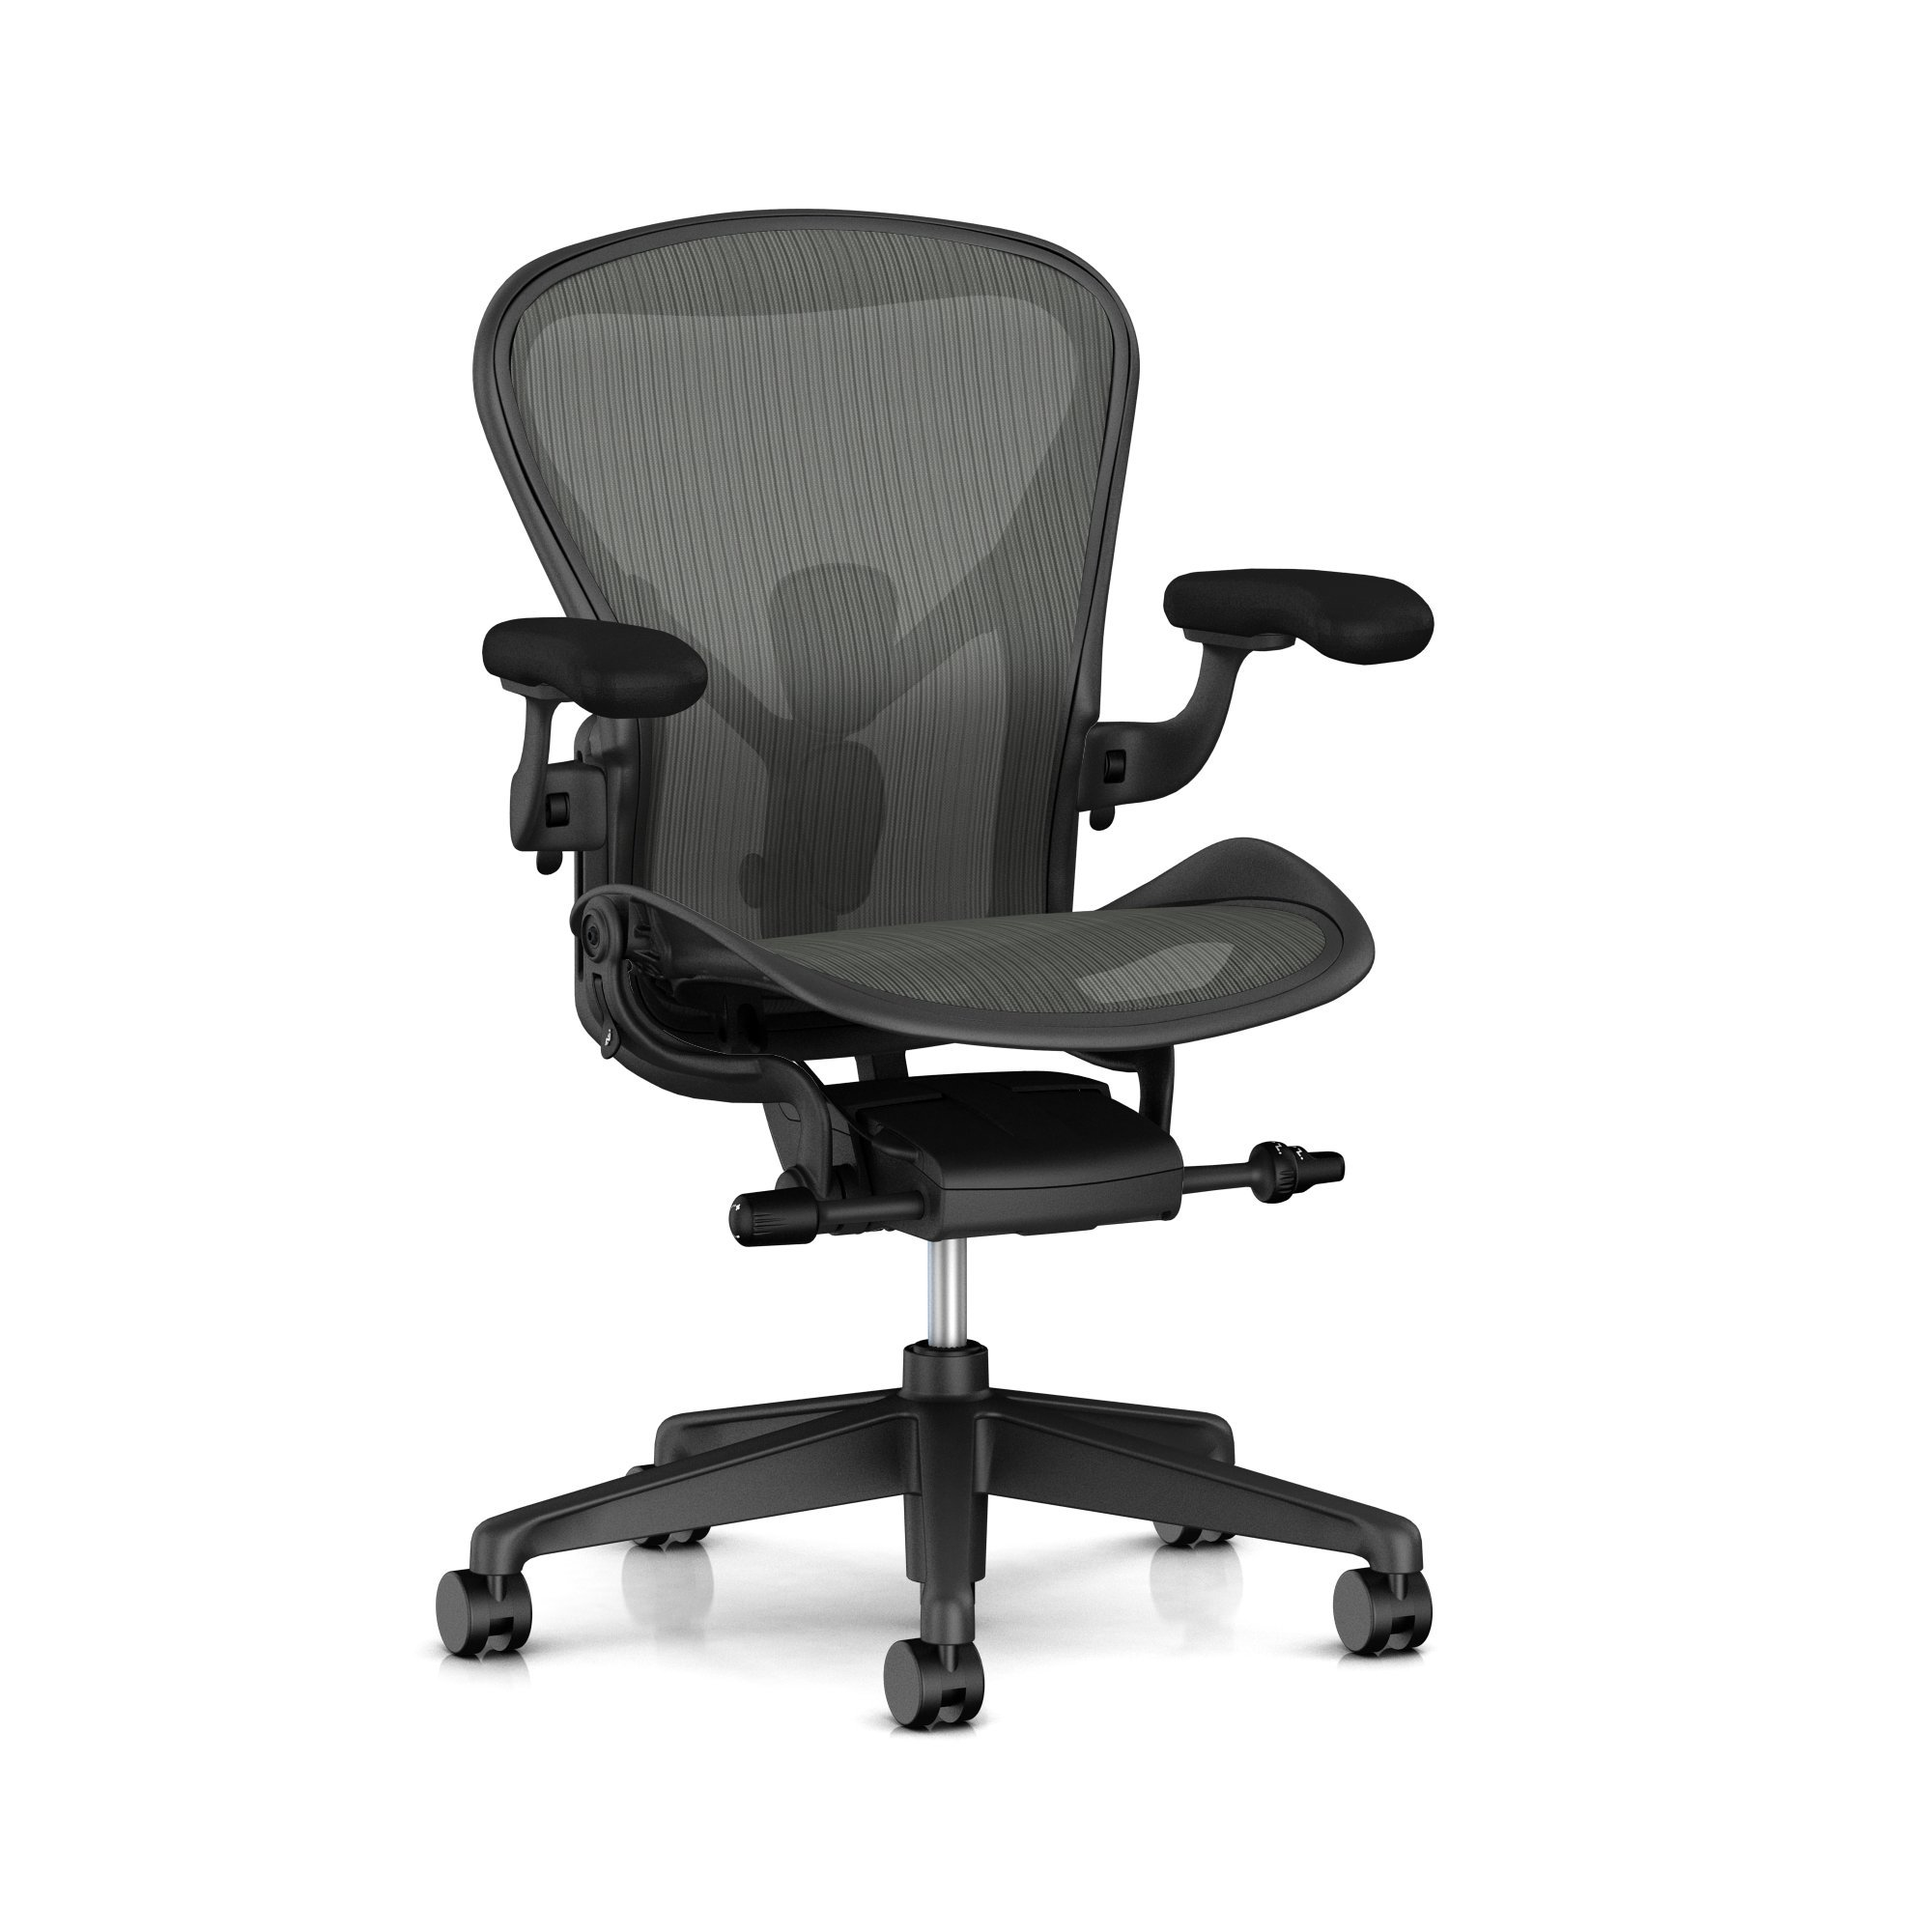 Herman Miller Aeron Chair, Size C, Graphite